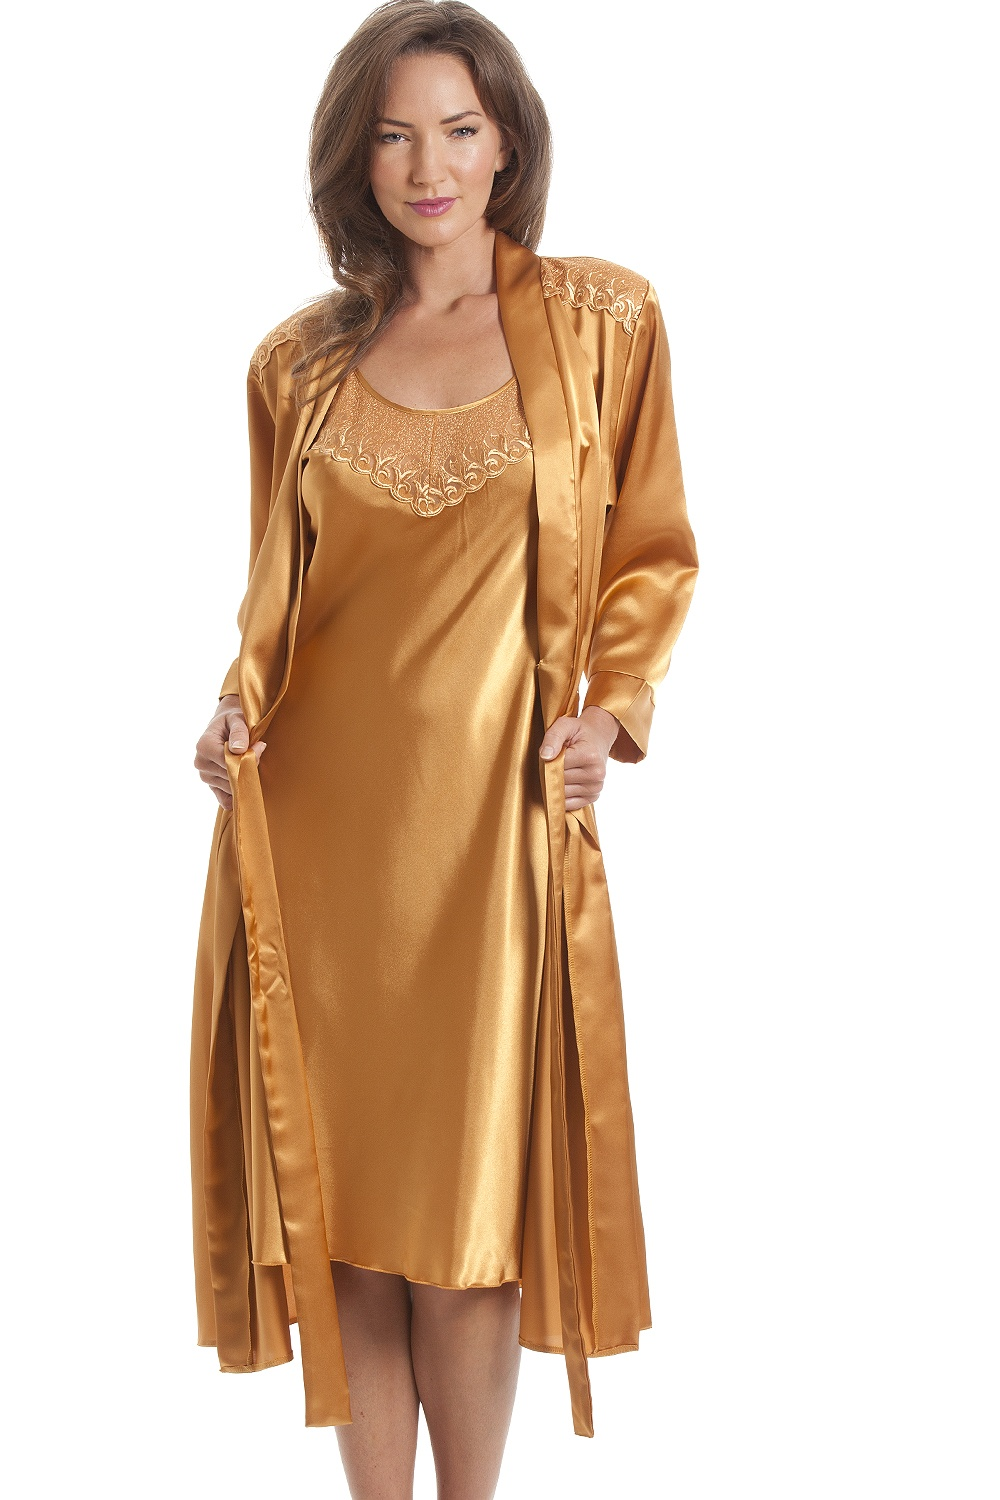 f7db893414 Camille Luxury Satin Gold Wrap And Chemise Set